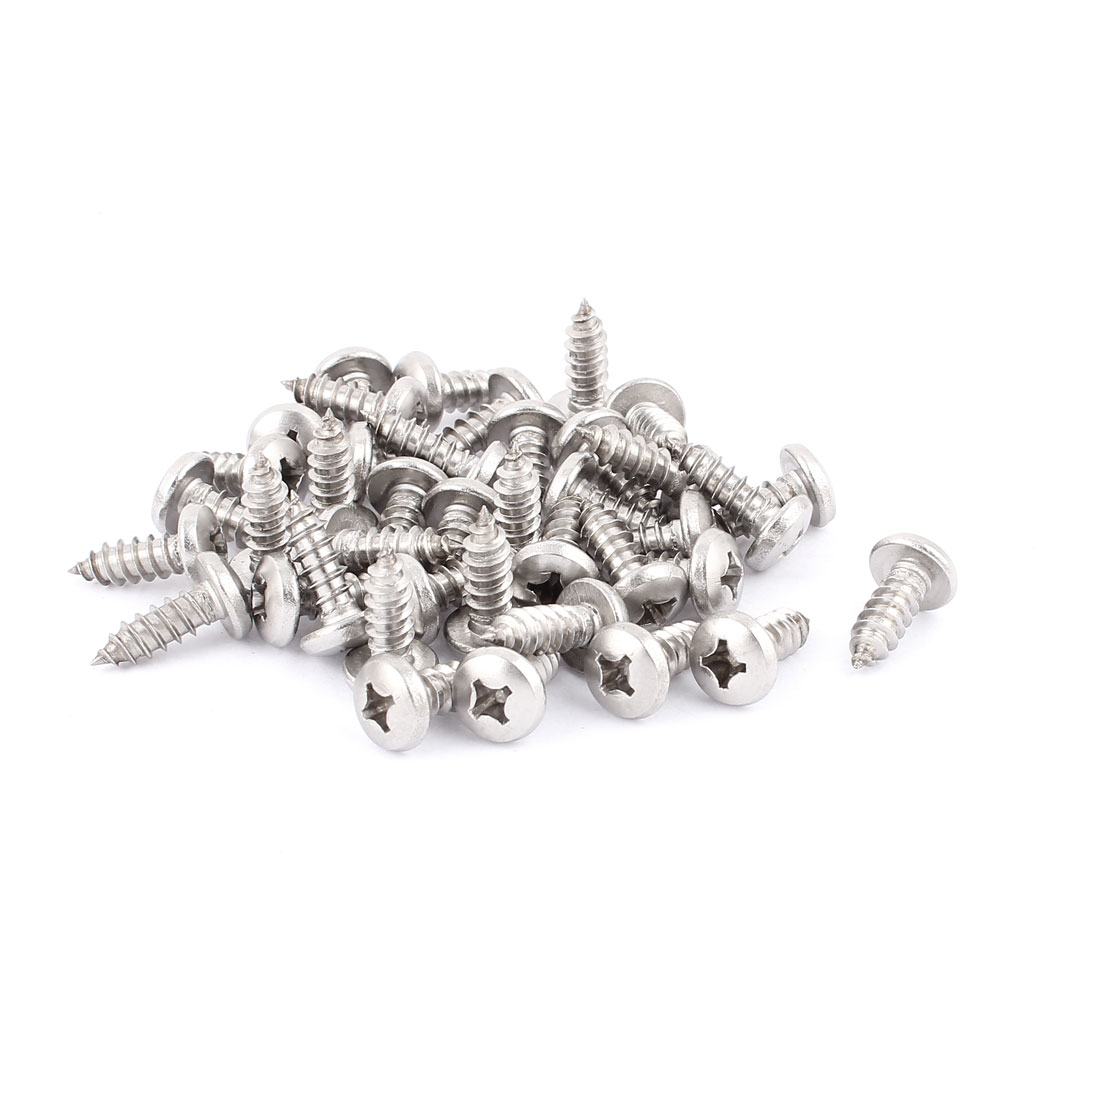 5.5mm x 18mm Pan Head Phillips Self Tapping Screw Fasteners Silver Tone 40 Pcs